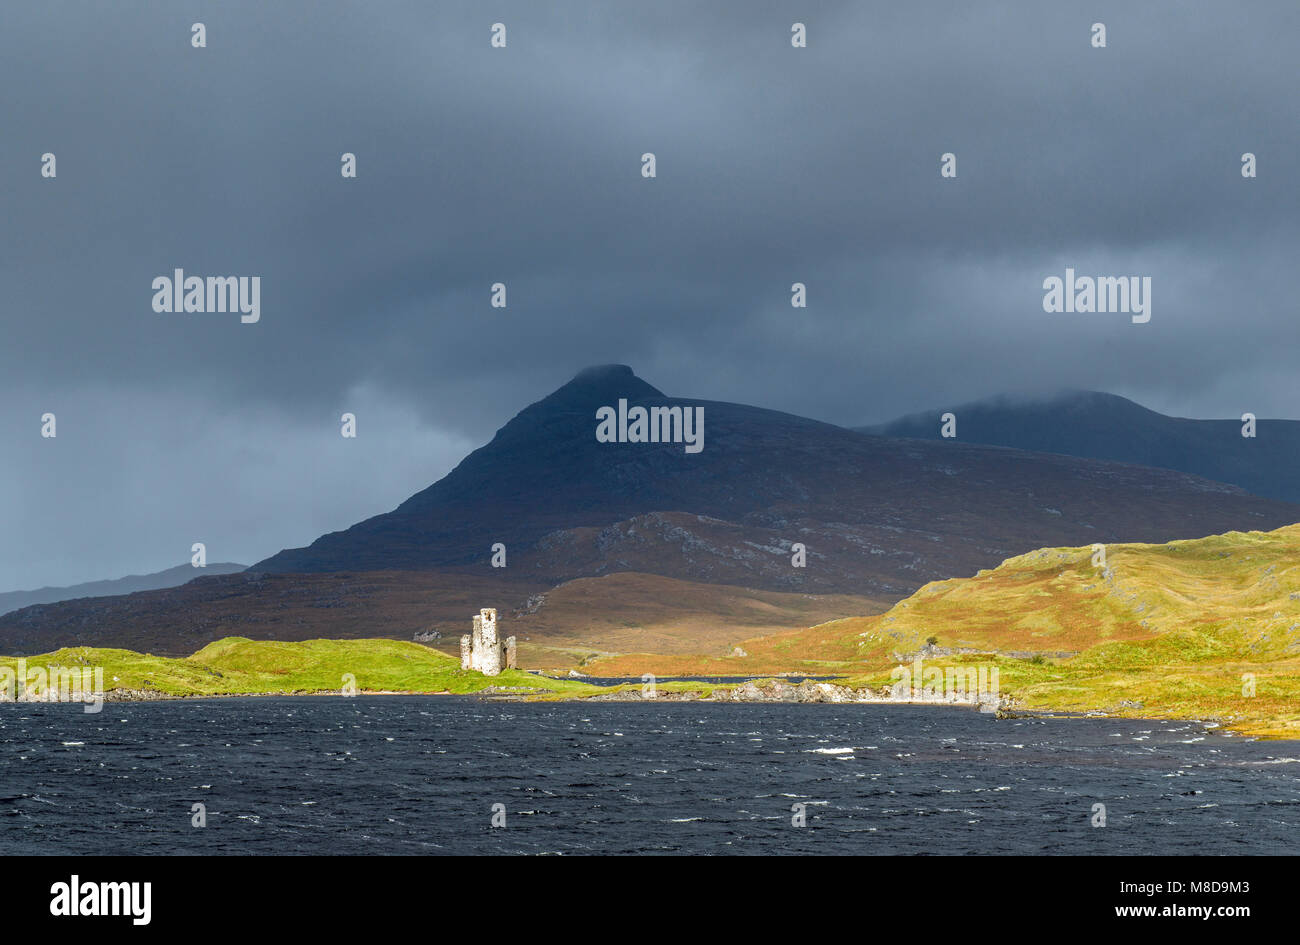 Ardvreck Castle lit up by the sun on the shores of Loch Assynt in the Scottish Highlands in autumn - Stock Image